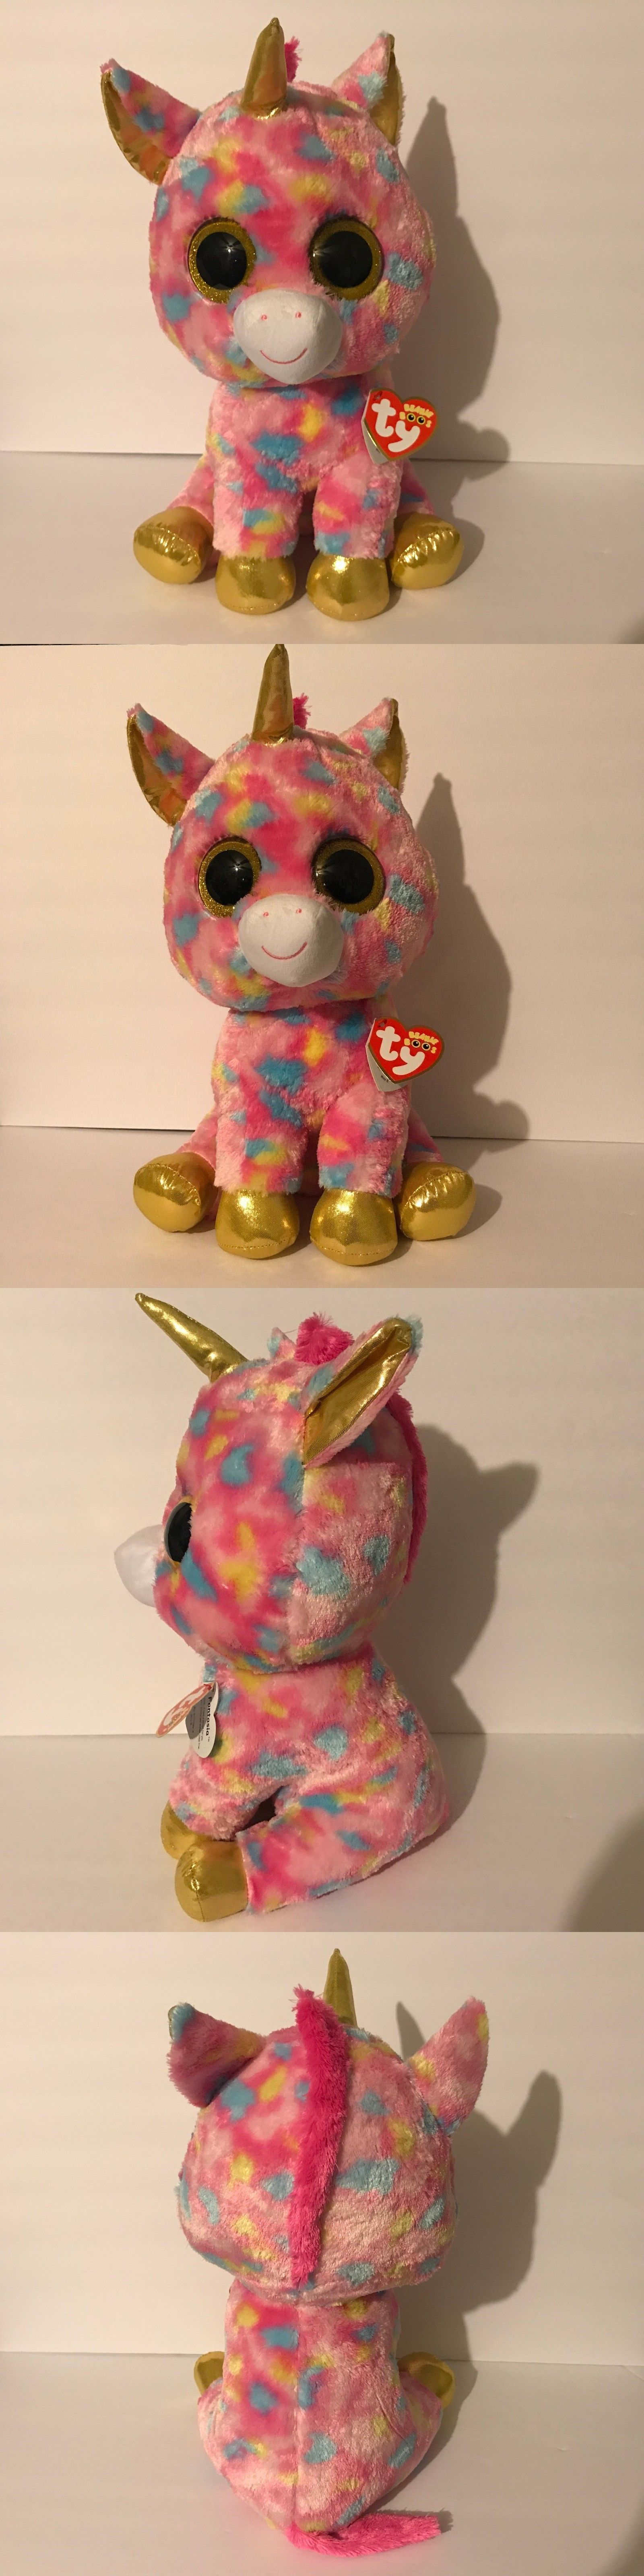 729624846df Ty 19203  Ty Beanie Boos - Fantasia The Unicorn (Glitter Eyes) (Large Big  Size - 17 Inch) -  BUY IT NOW ONLY   19.99 on  eBay  beanie  fantasia   unicorn